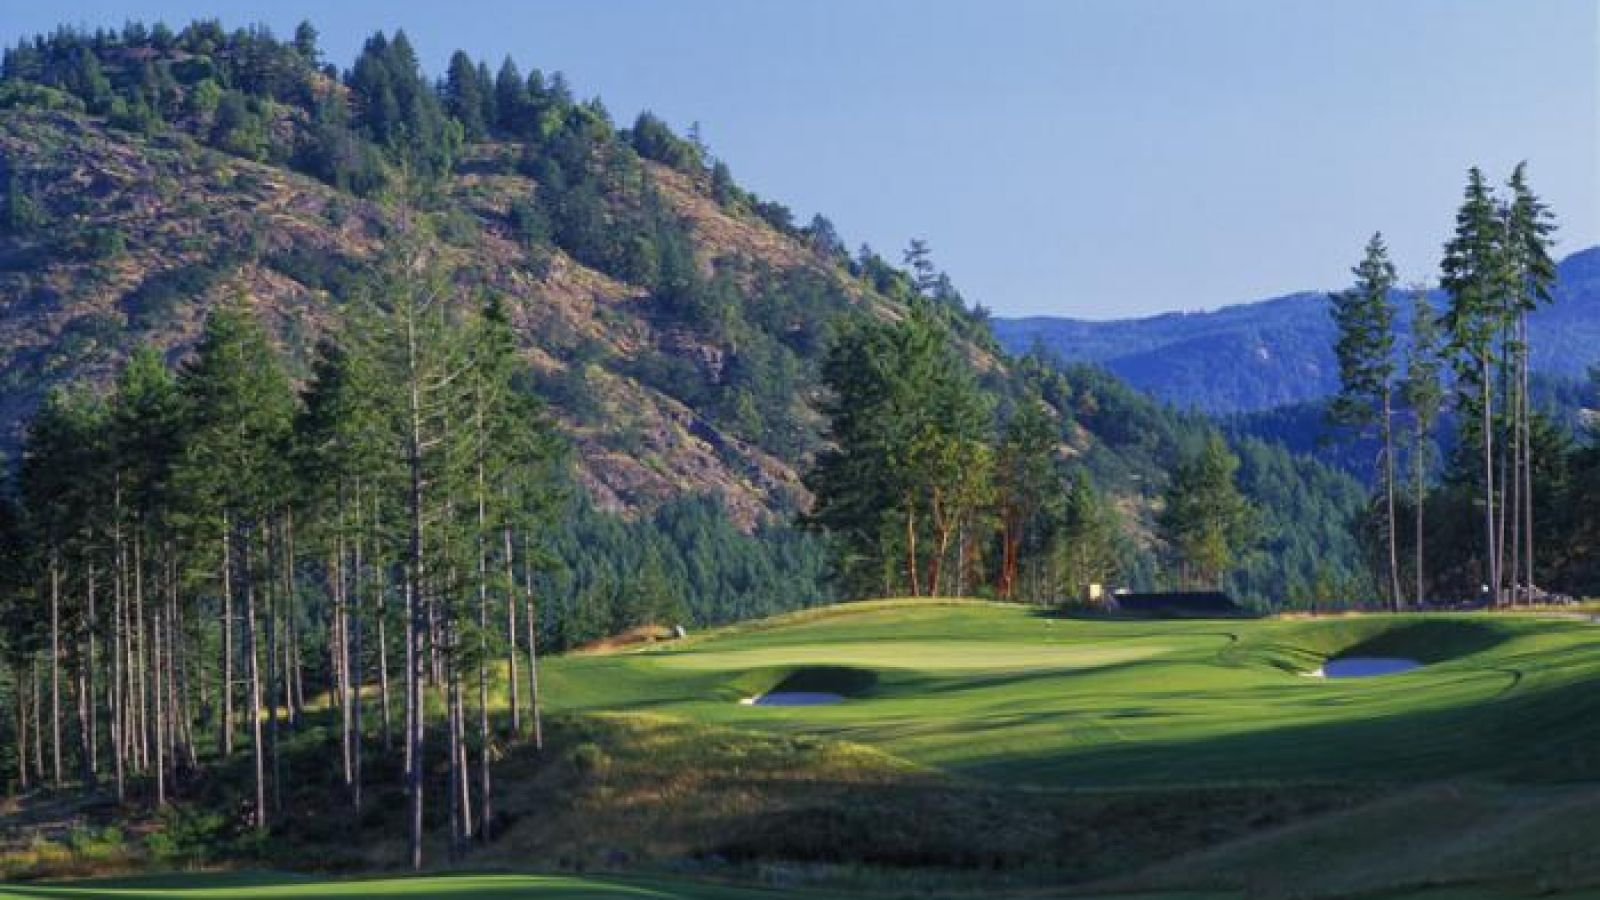 Westin Bear Mountain Resort - Vancouver Island golf packages